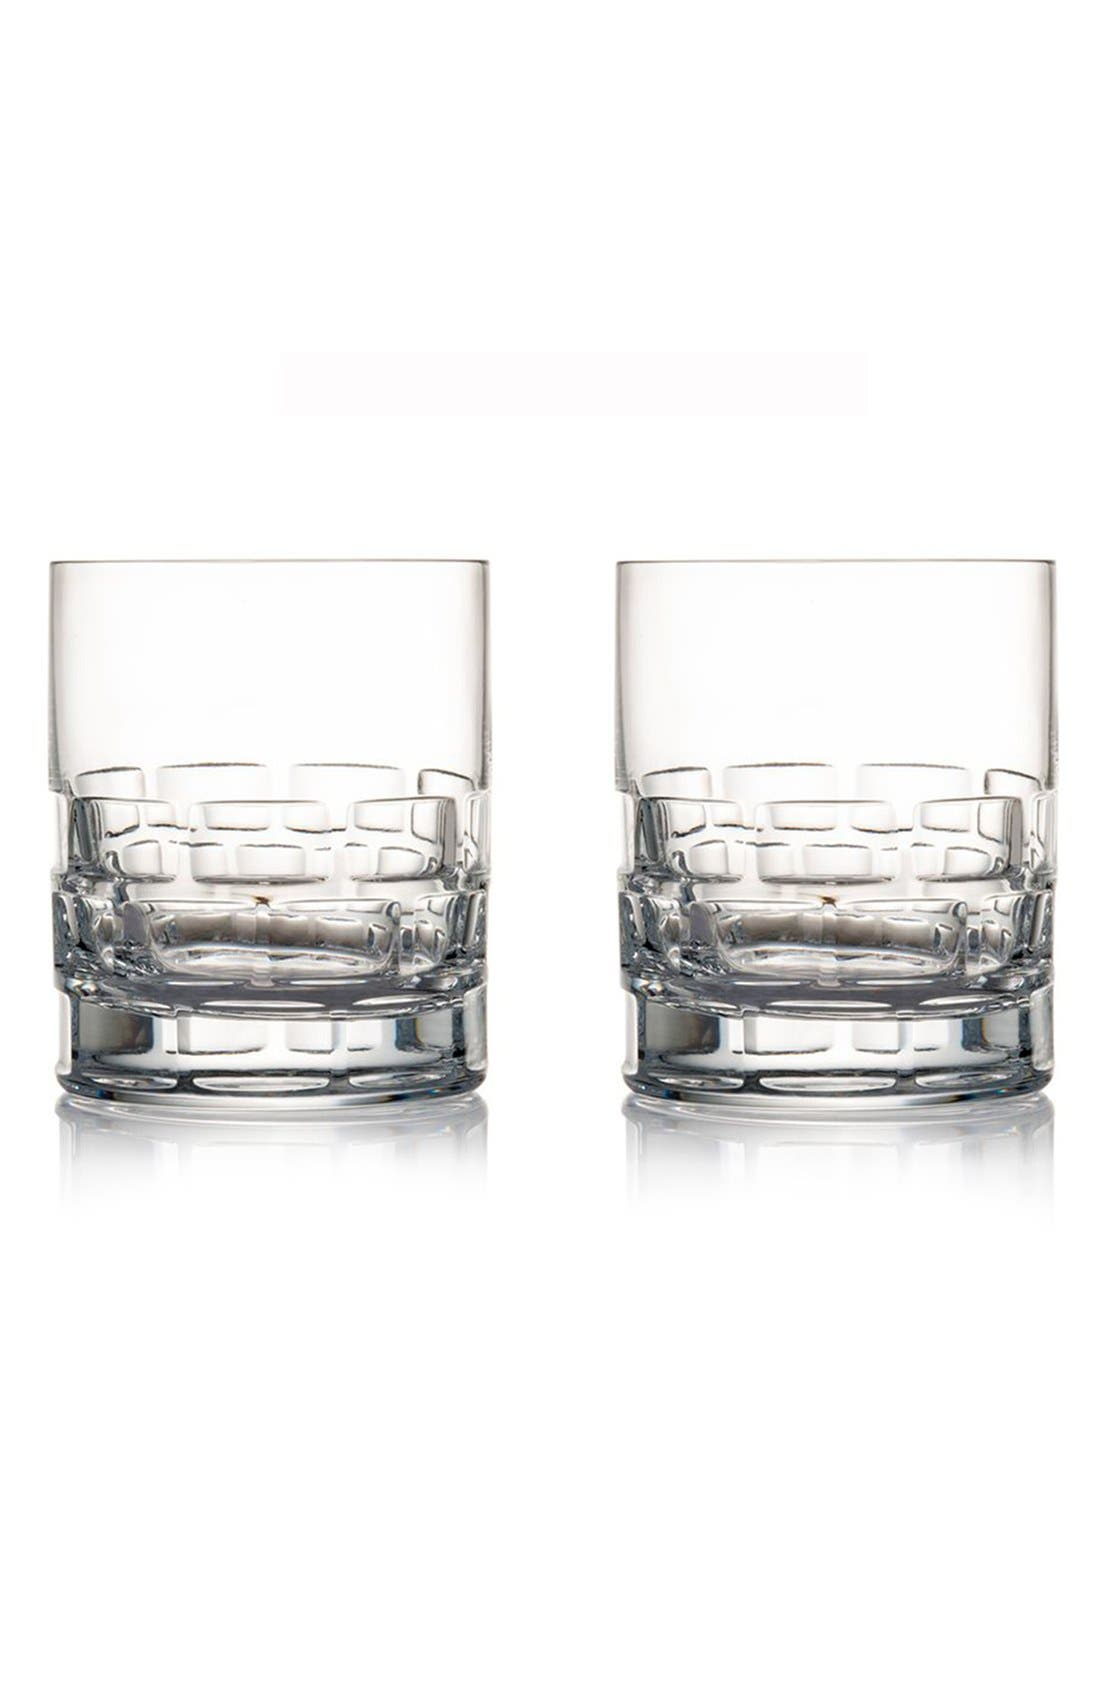 Main Image - Rogaska Crystal 'Maison' Lead Crystal Double Old Fashioned Glasses (Set of 2)